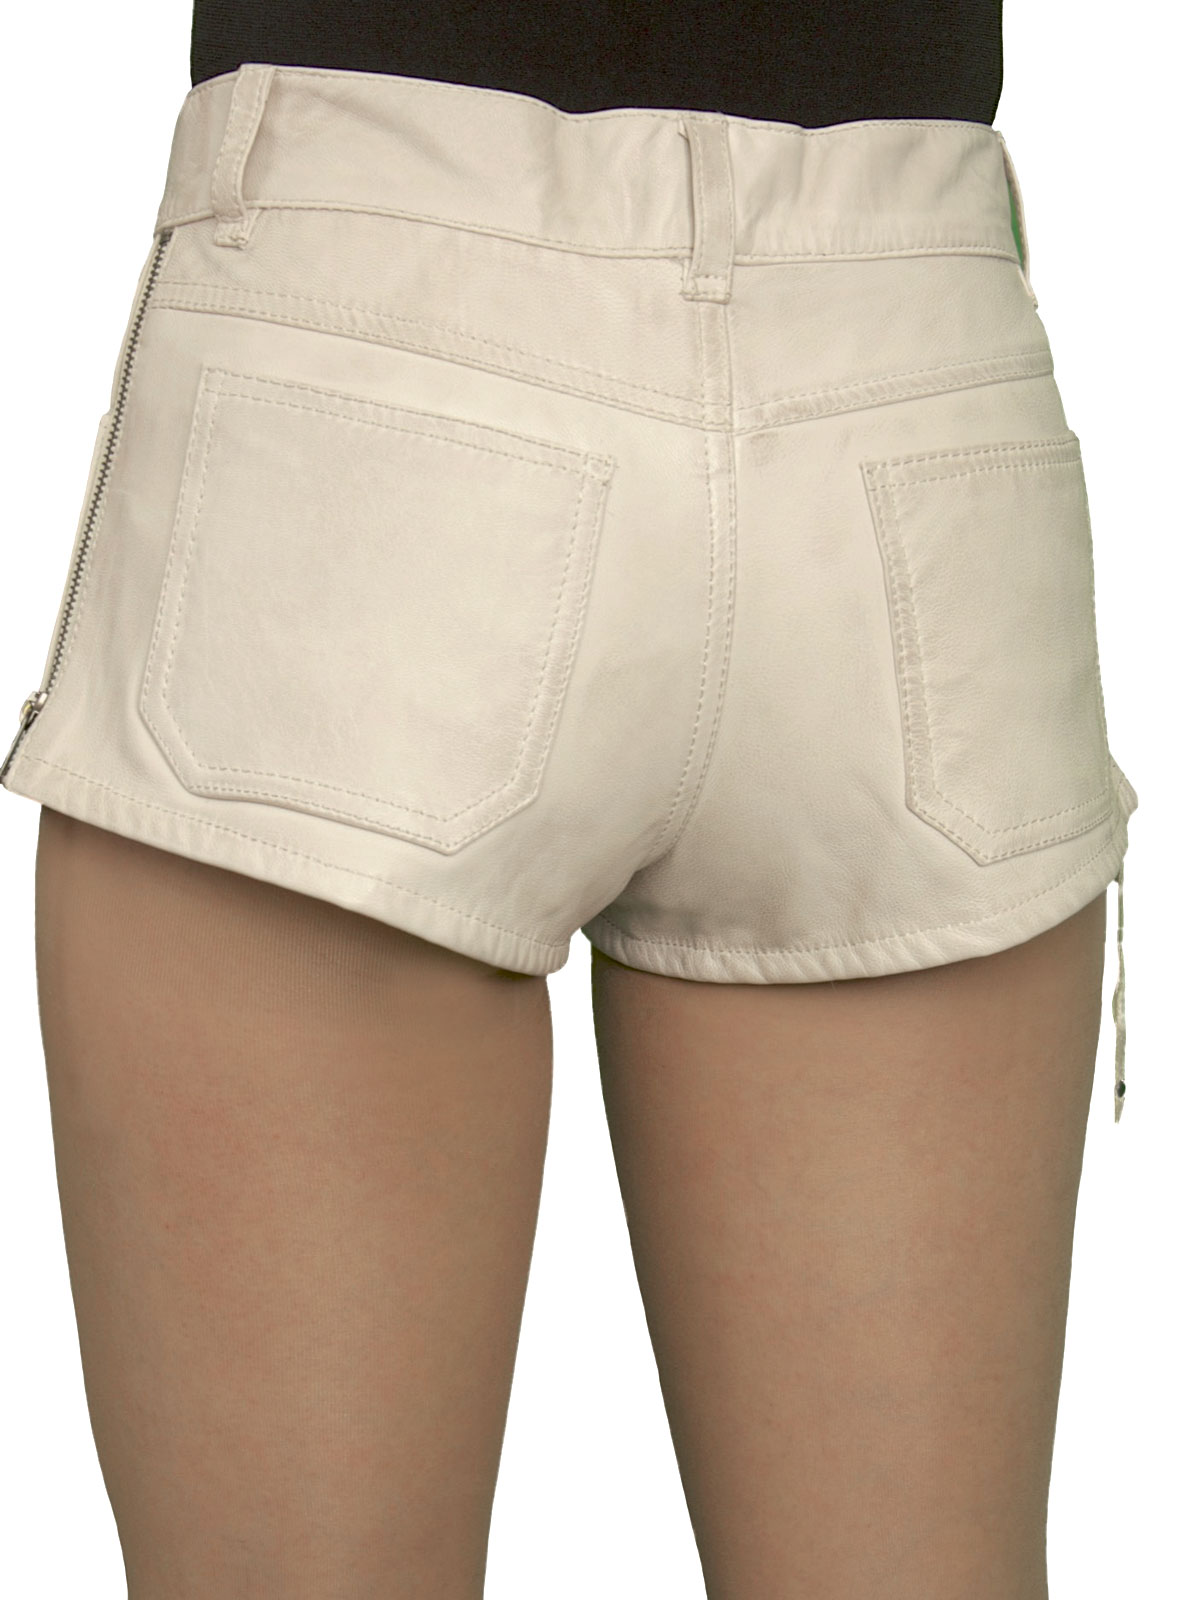 Cute Shorts. We say that most Tillys girls want a whole bunch of cute shorts to deck out their summer look. That's why at Tillys we are well-stocked with women's denim shorts, high waist shorts, and sexy high rise shorts.